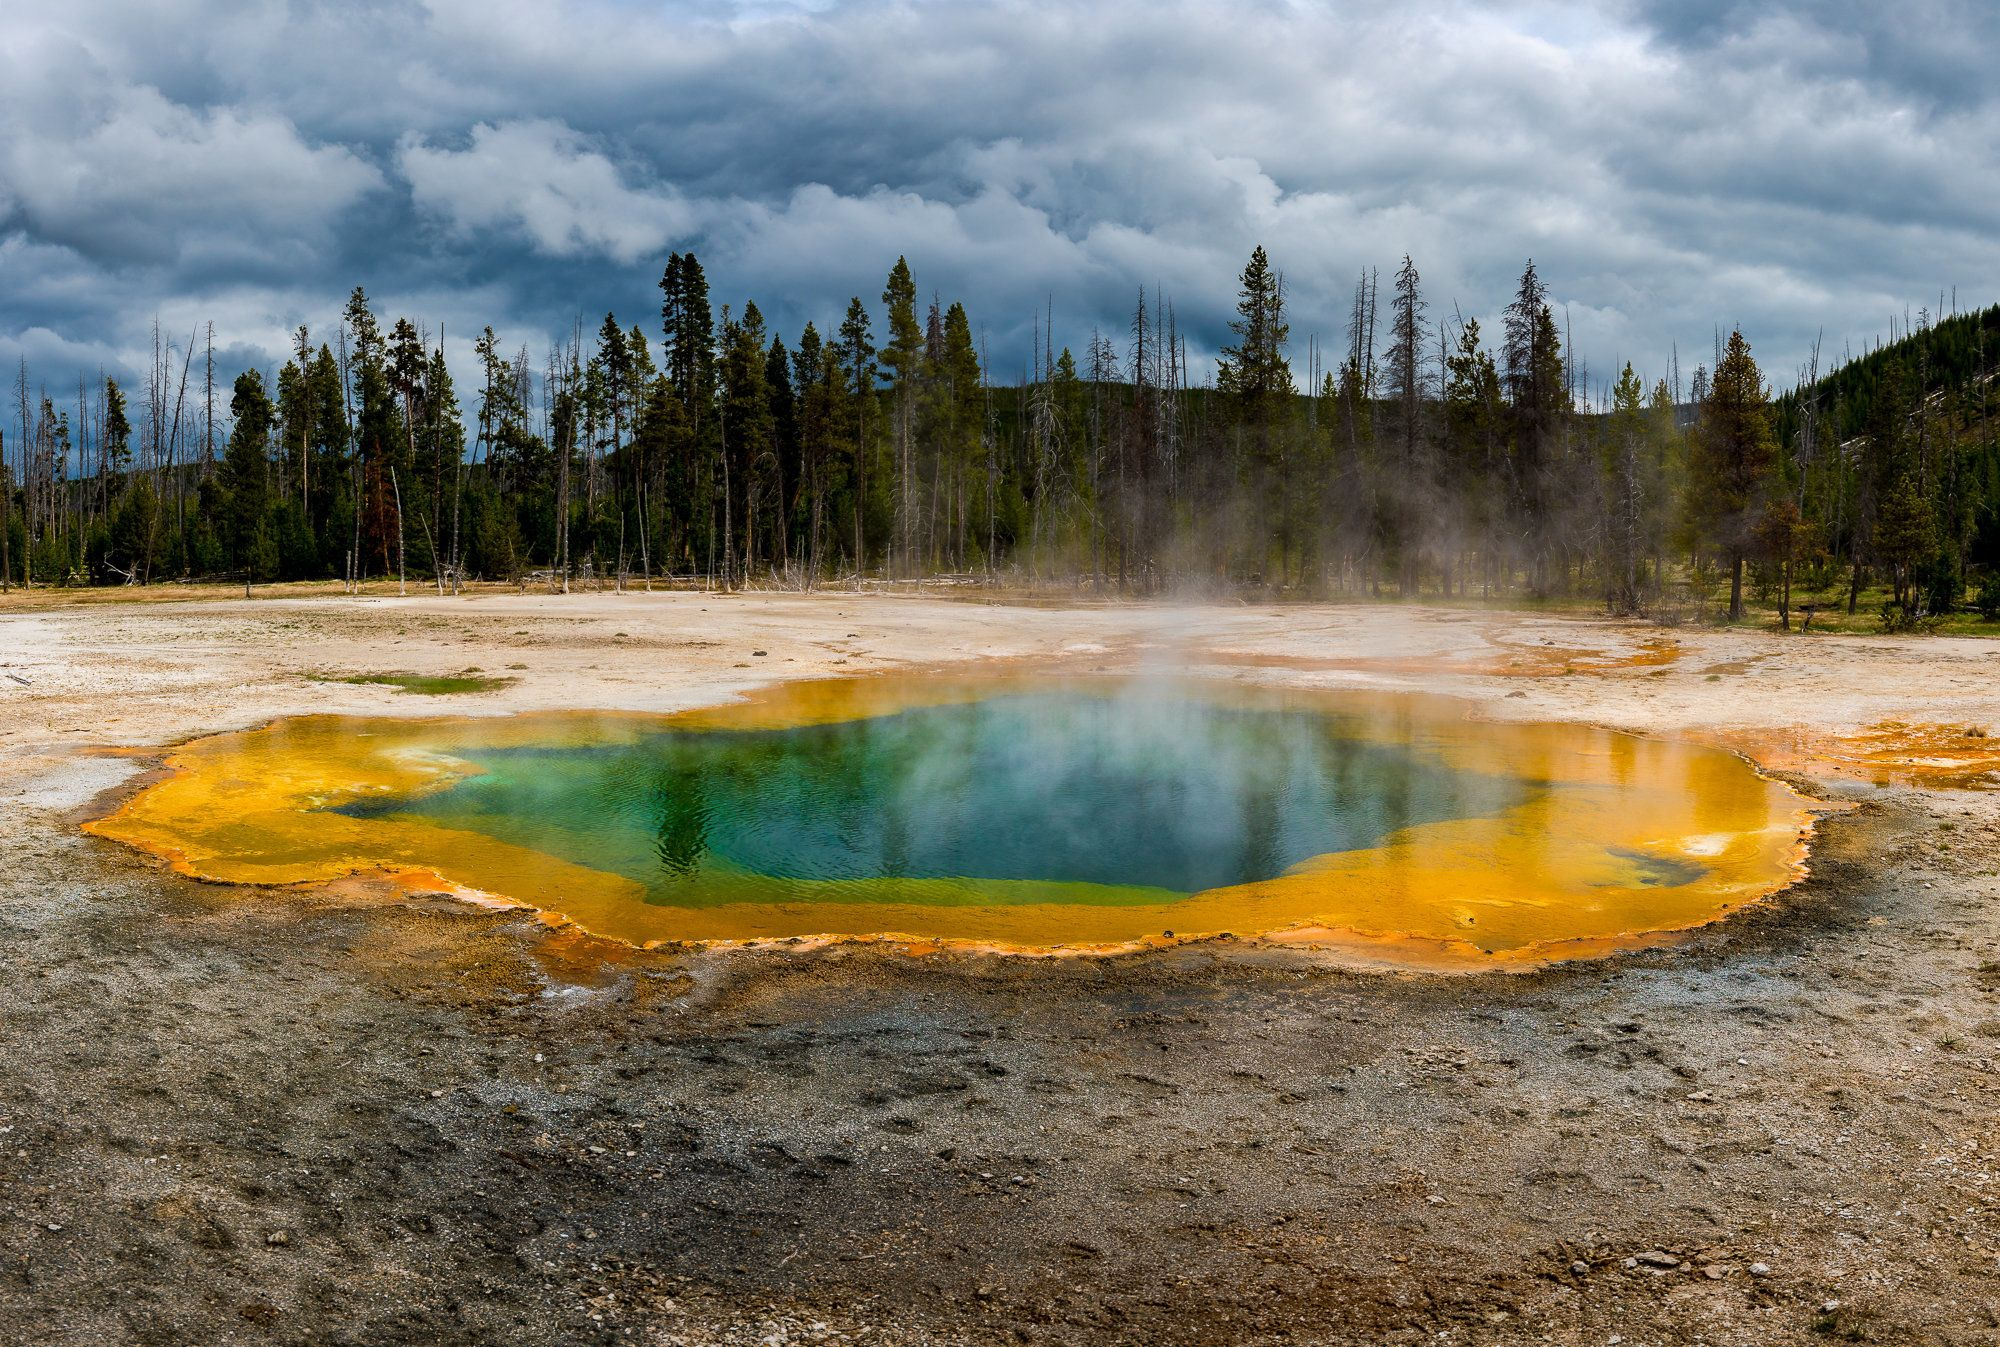 *** EXCLUSIVE ***  YELLOWSTONE NATIONAL PARK, WY - MAY 2016: The pools steam and bubble, reminding you that this volcano is well overdue an eruption, taken in May 2016, in Yellowstone National Park, Wyoming, United States.  WITNESSING the beautiful spectrum of colours in Yellowstone National Park springs, you could almost forget youre standing on a supervolcano way past its eruption due date. The extraterrestrial-looking mineral-rich pools are caused by bacteria and thermophiles growing around the edges, creating the striking colours. The heat from three super eruptions thousands of years ago still powers the parks geysers, hot springs, fumaroles and mud pots, indicating how frighteningly active this volcano is directly under visitors feet.  PHOTOGRAPH BY Russell Pearson / Barcroft Images   London-T:+44 207 033 1031 E:hello@barcroftmedia.com - New York-T:+1 212 796 2458 E:hello@barcroftusa.com - New Delhi-T:+91 11 4053 2429 E:hello@barcroftindia.com www.barcroftmedia.com (Photo credit should read Russell Pearson /Barcroft Images / Barcroft Media via Getty Images)